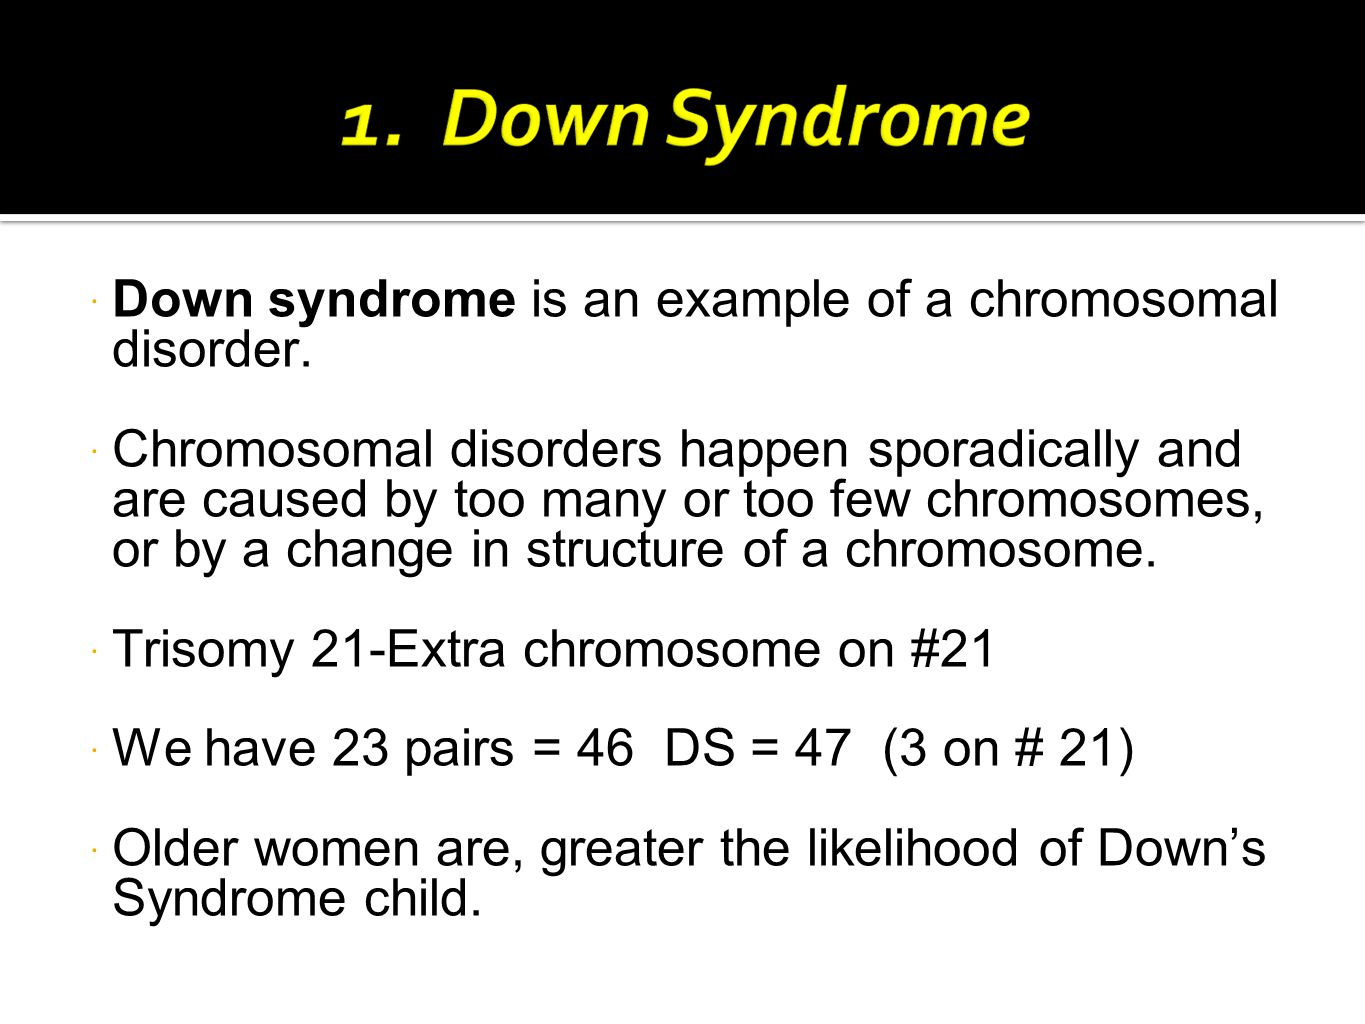  Down syndrome is an example of a chromosomal disorder.